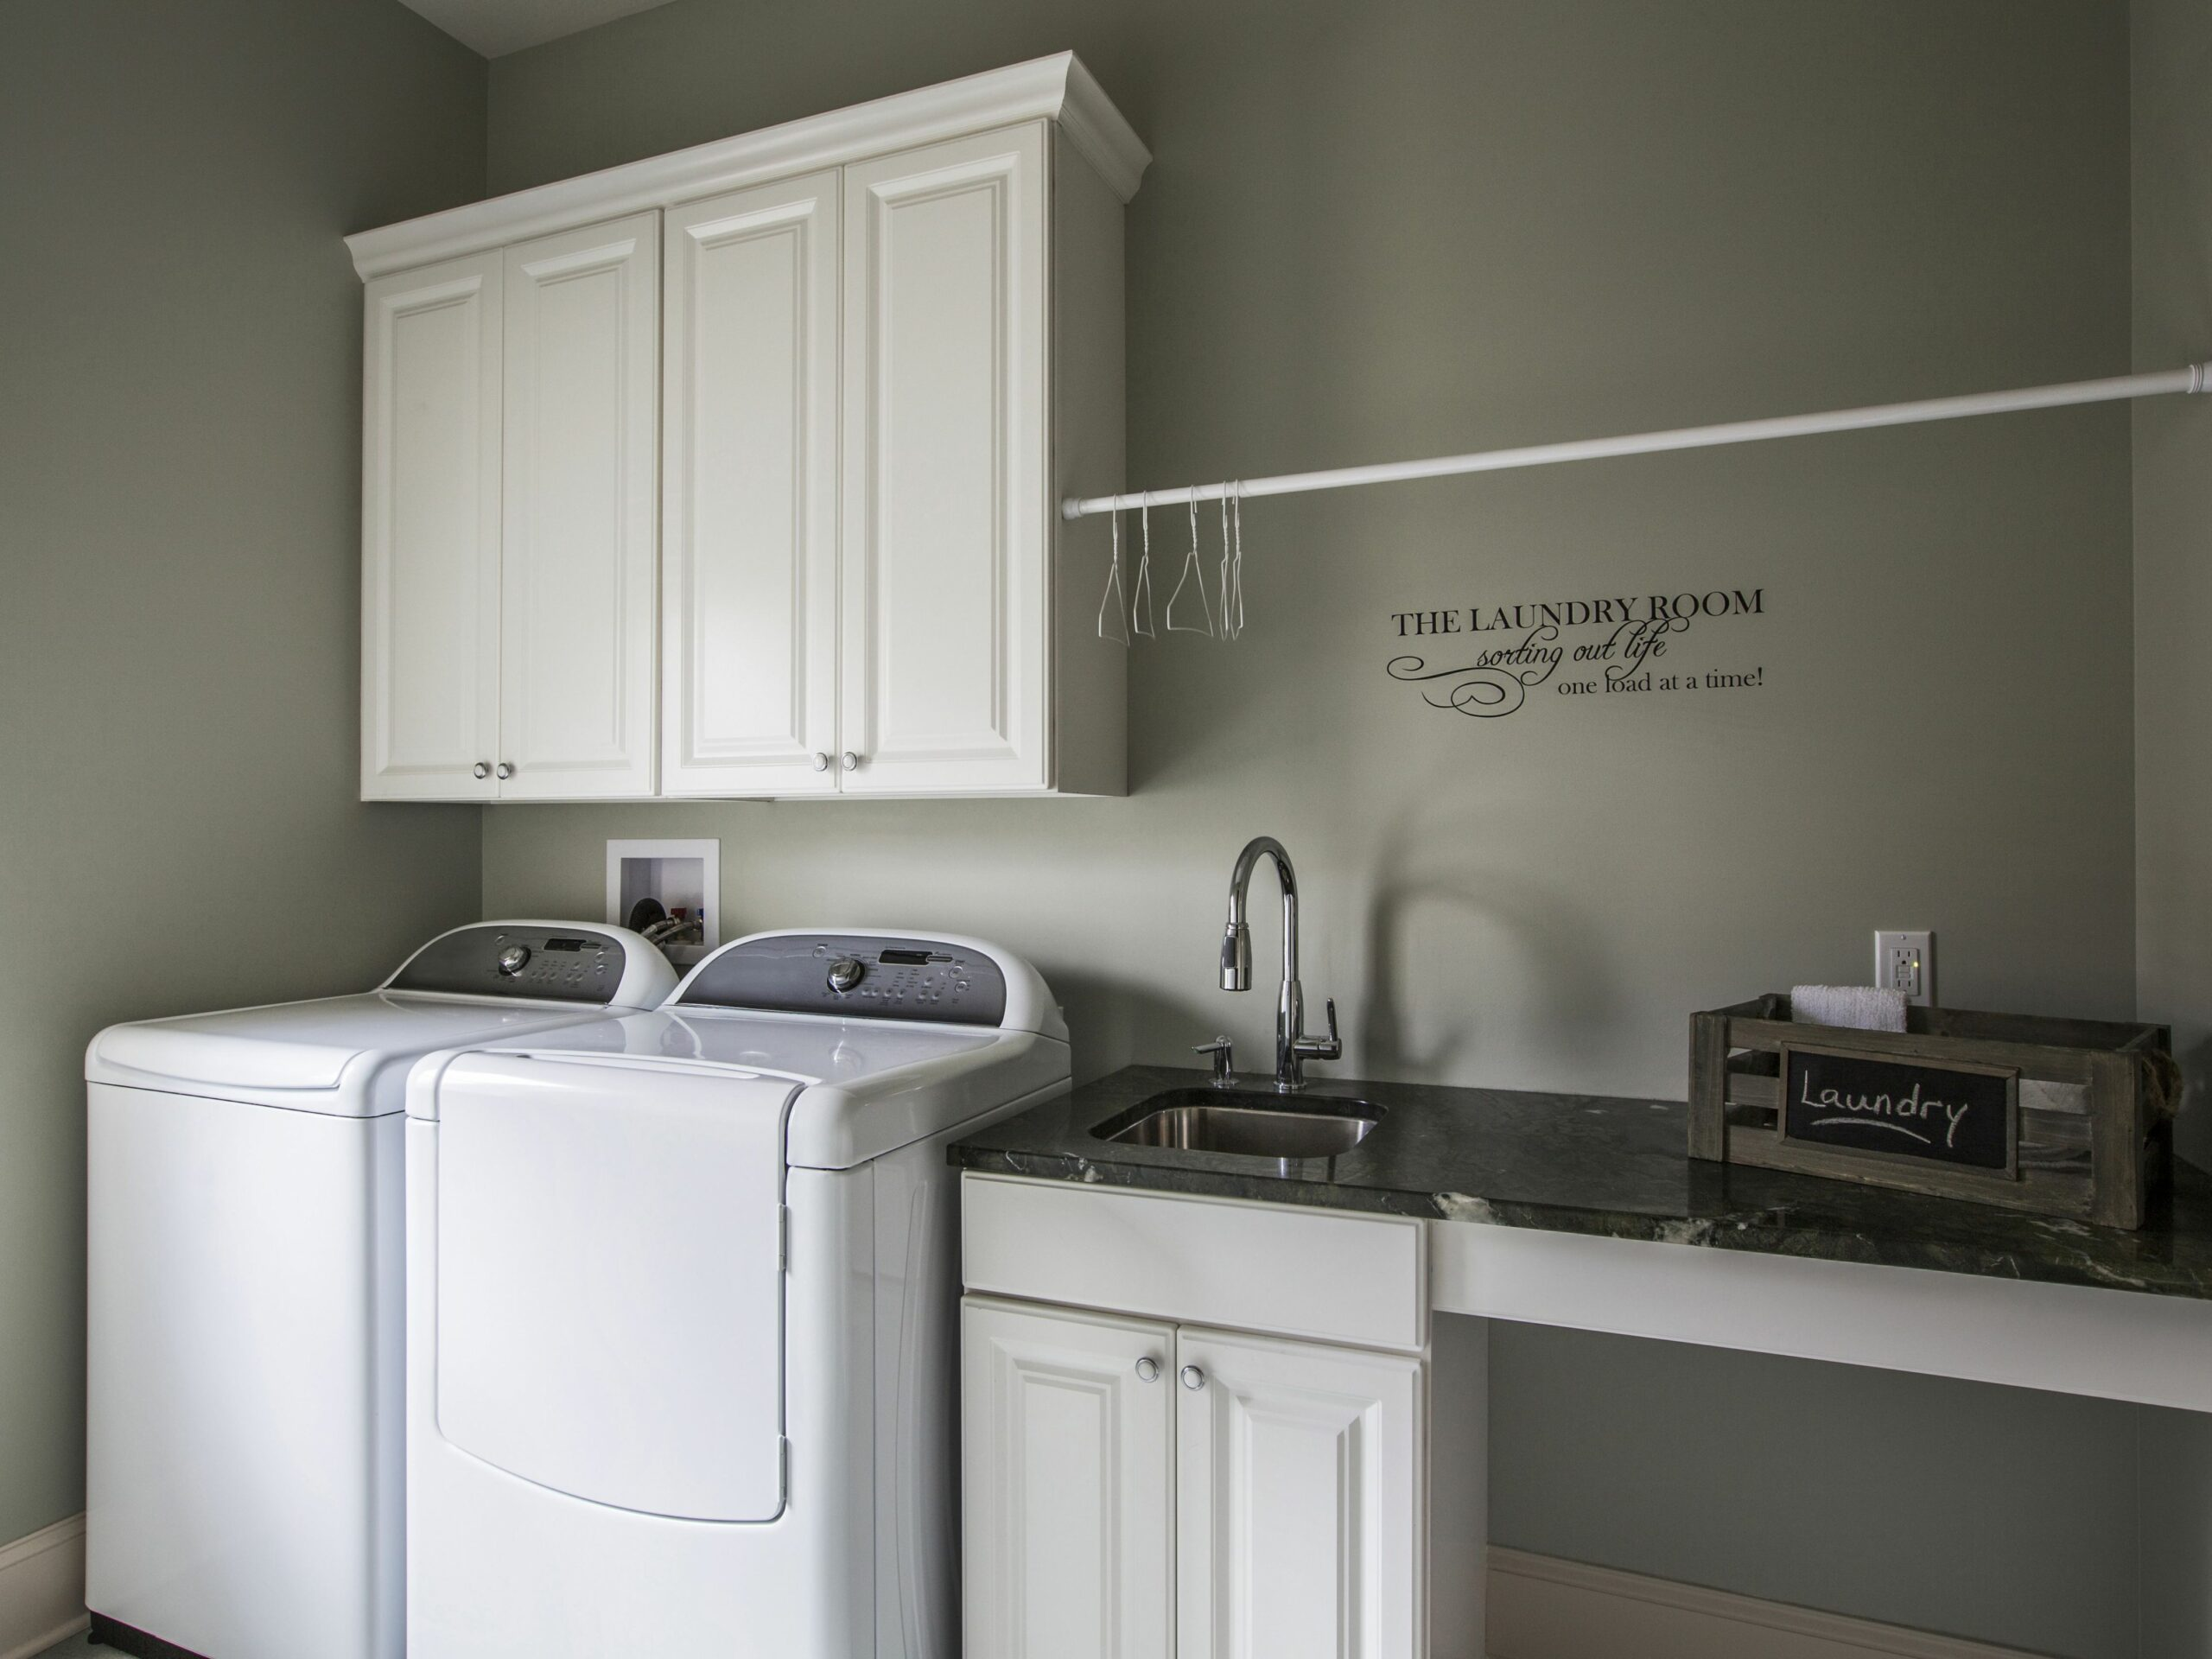 How Does a Top Load Washer Work? - laundry room ideas top load